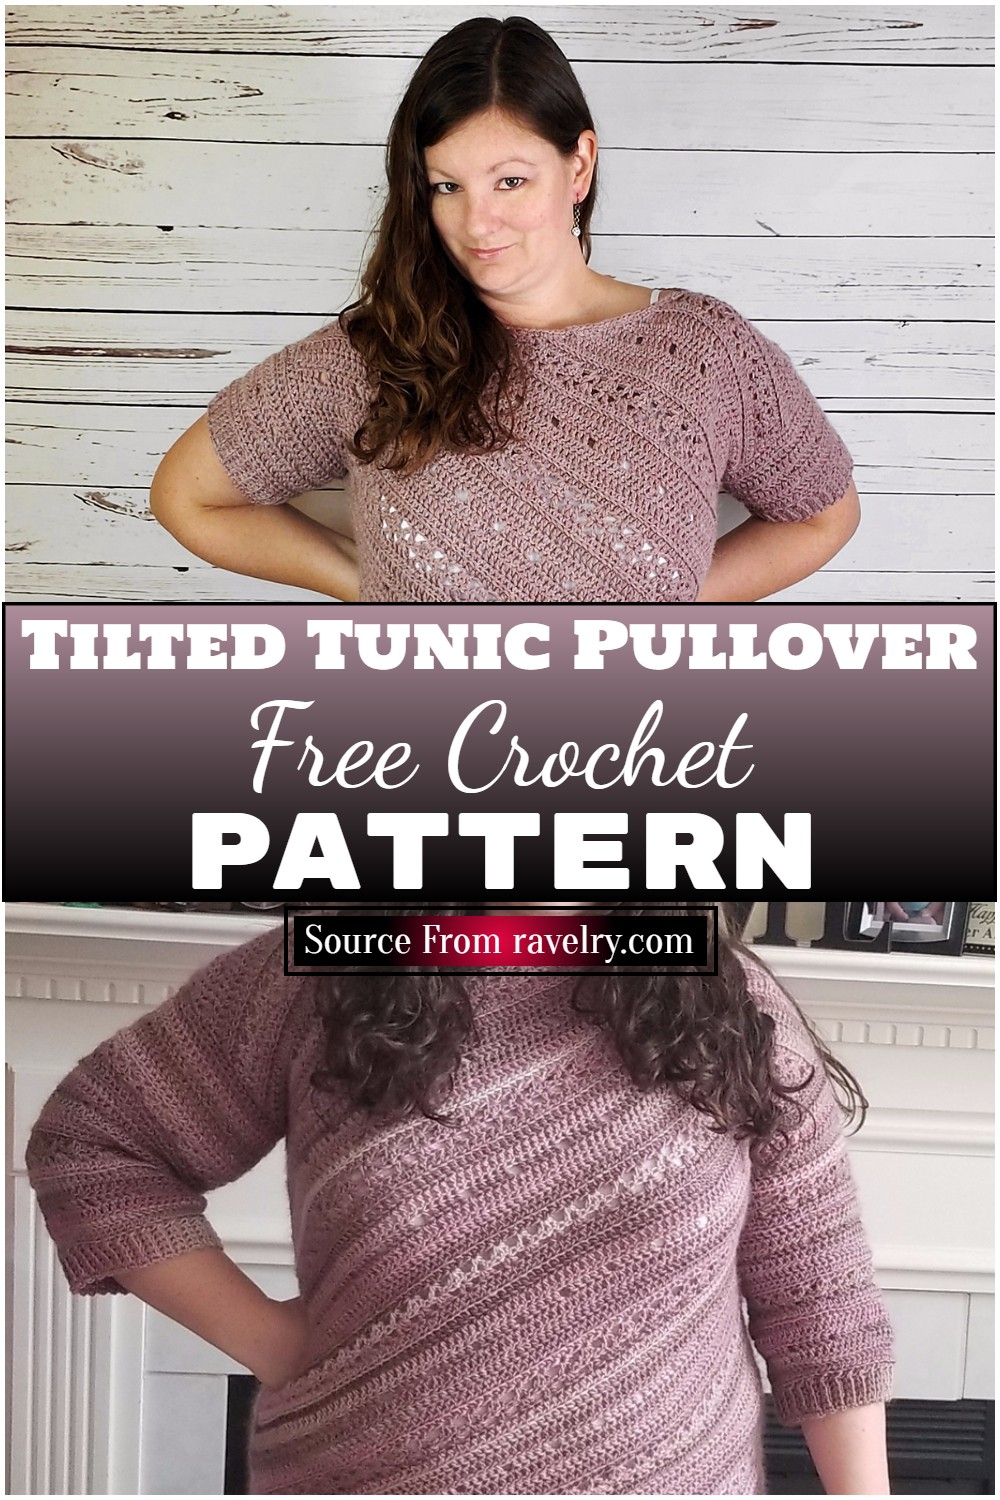 Free Crochet Tilted Tunic Pullover Pattern